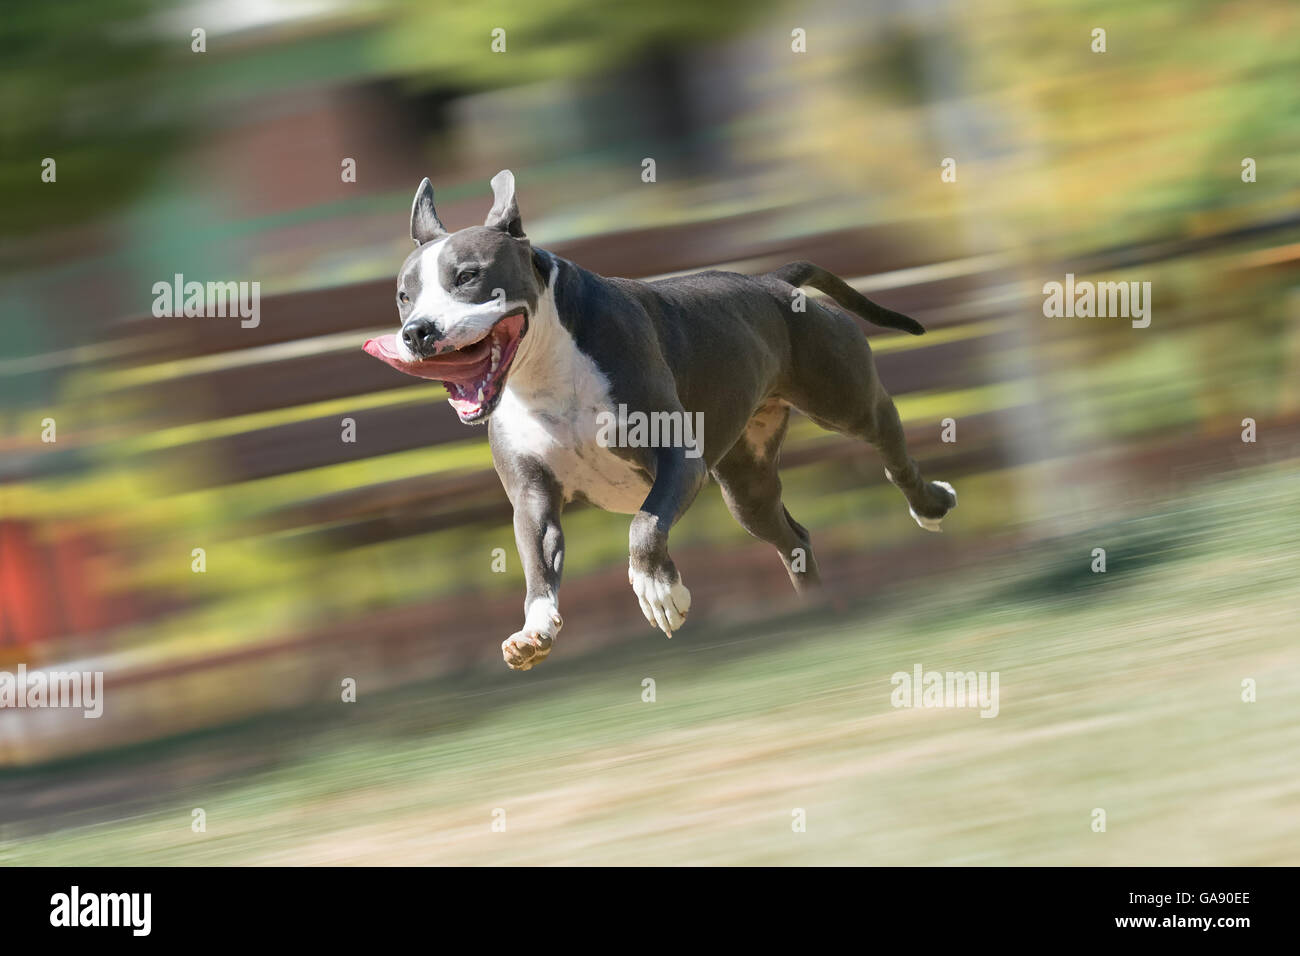 American Staffordshire terrier running and playing at a park. Stock Photo